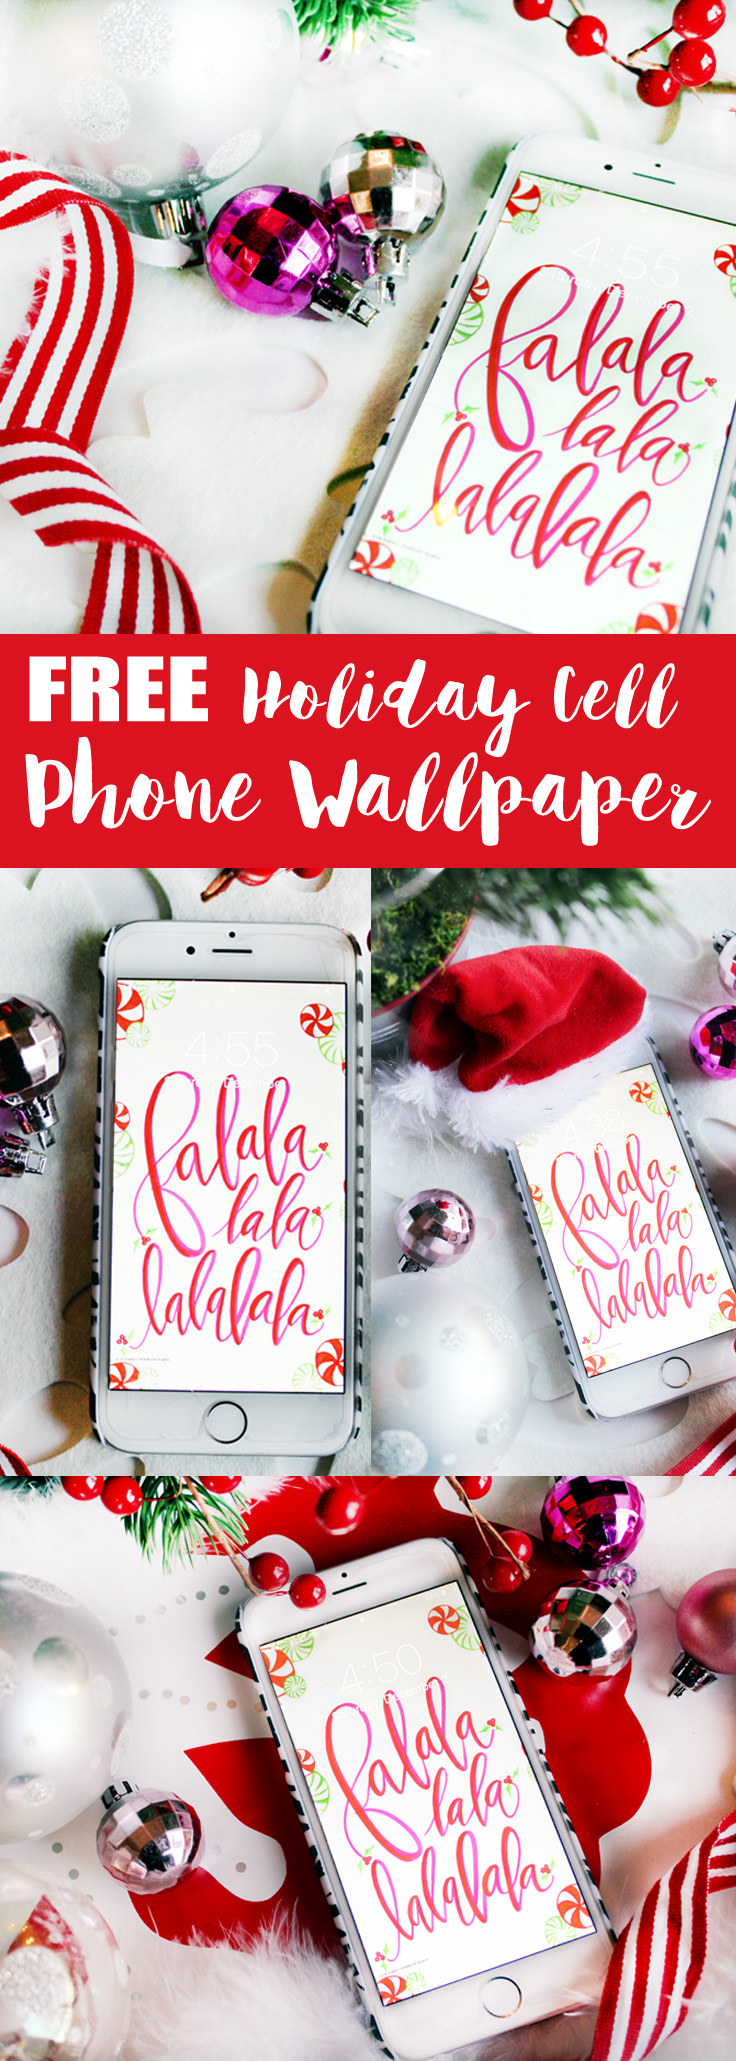 Free Holiday Cell Phone Wallpaper Background Giggles Galore